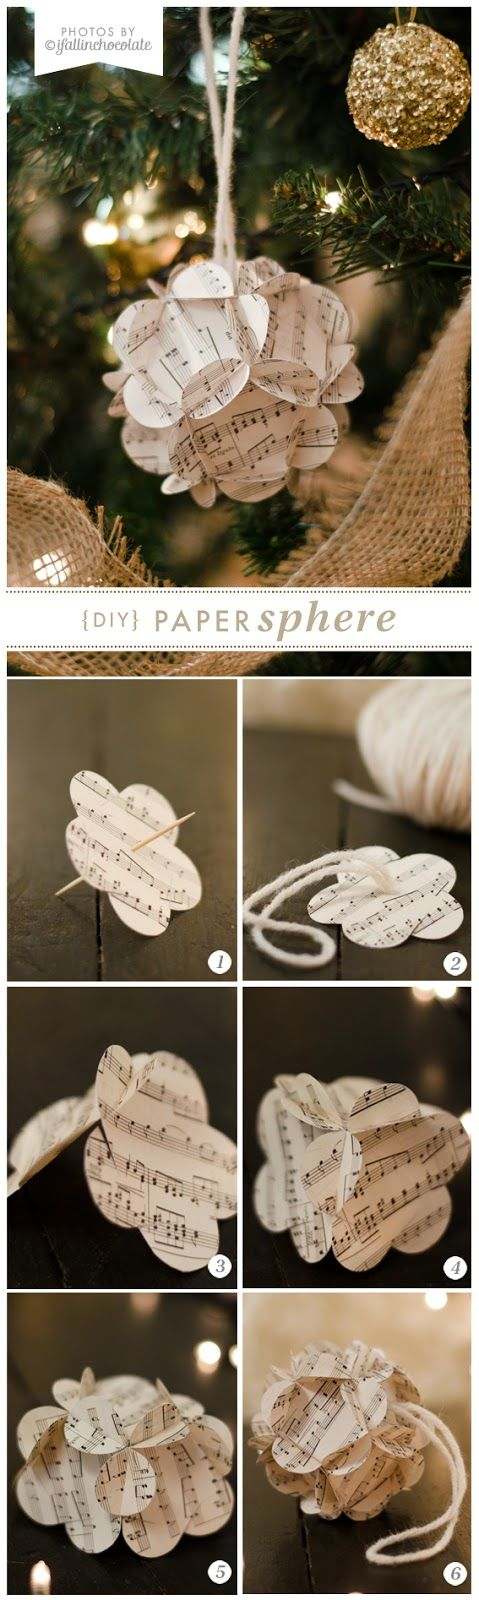 how to make a paper sphere step by step